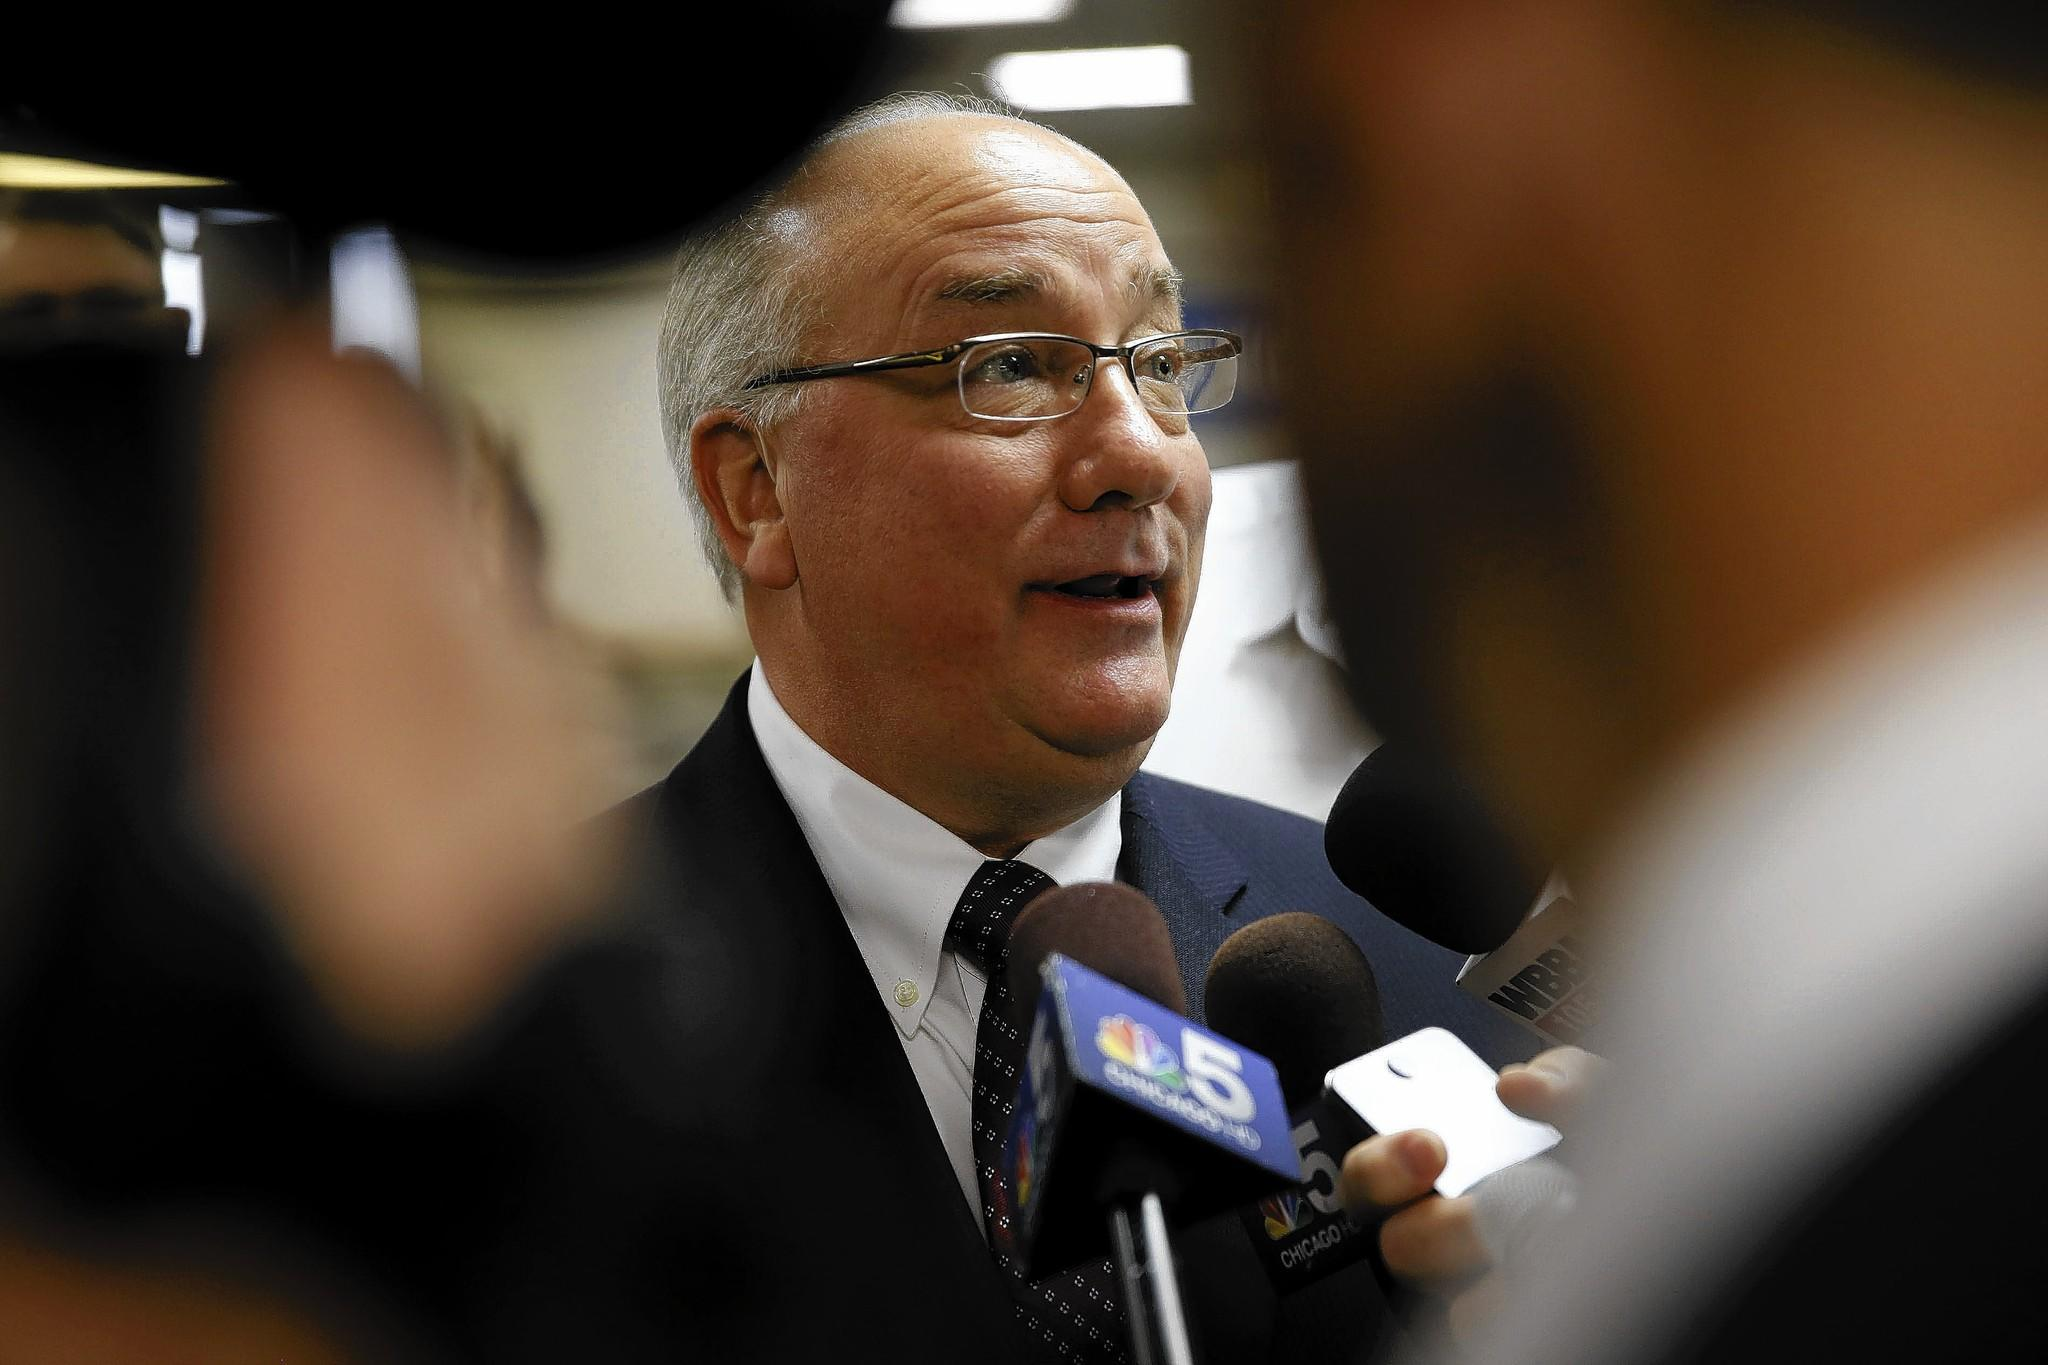 Don Orseno, who has been Metra's acting CEO since August, is said to be the leading contender among four candidates for the top job. Orseno has 40 years of railroad experience, including 30 years at Metra.